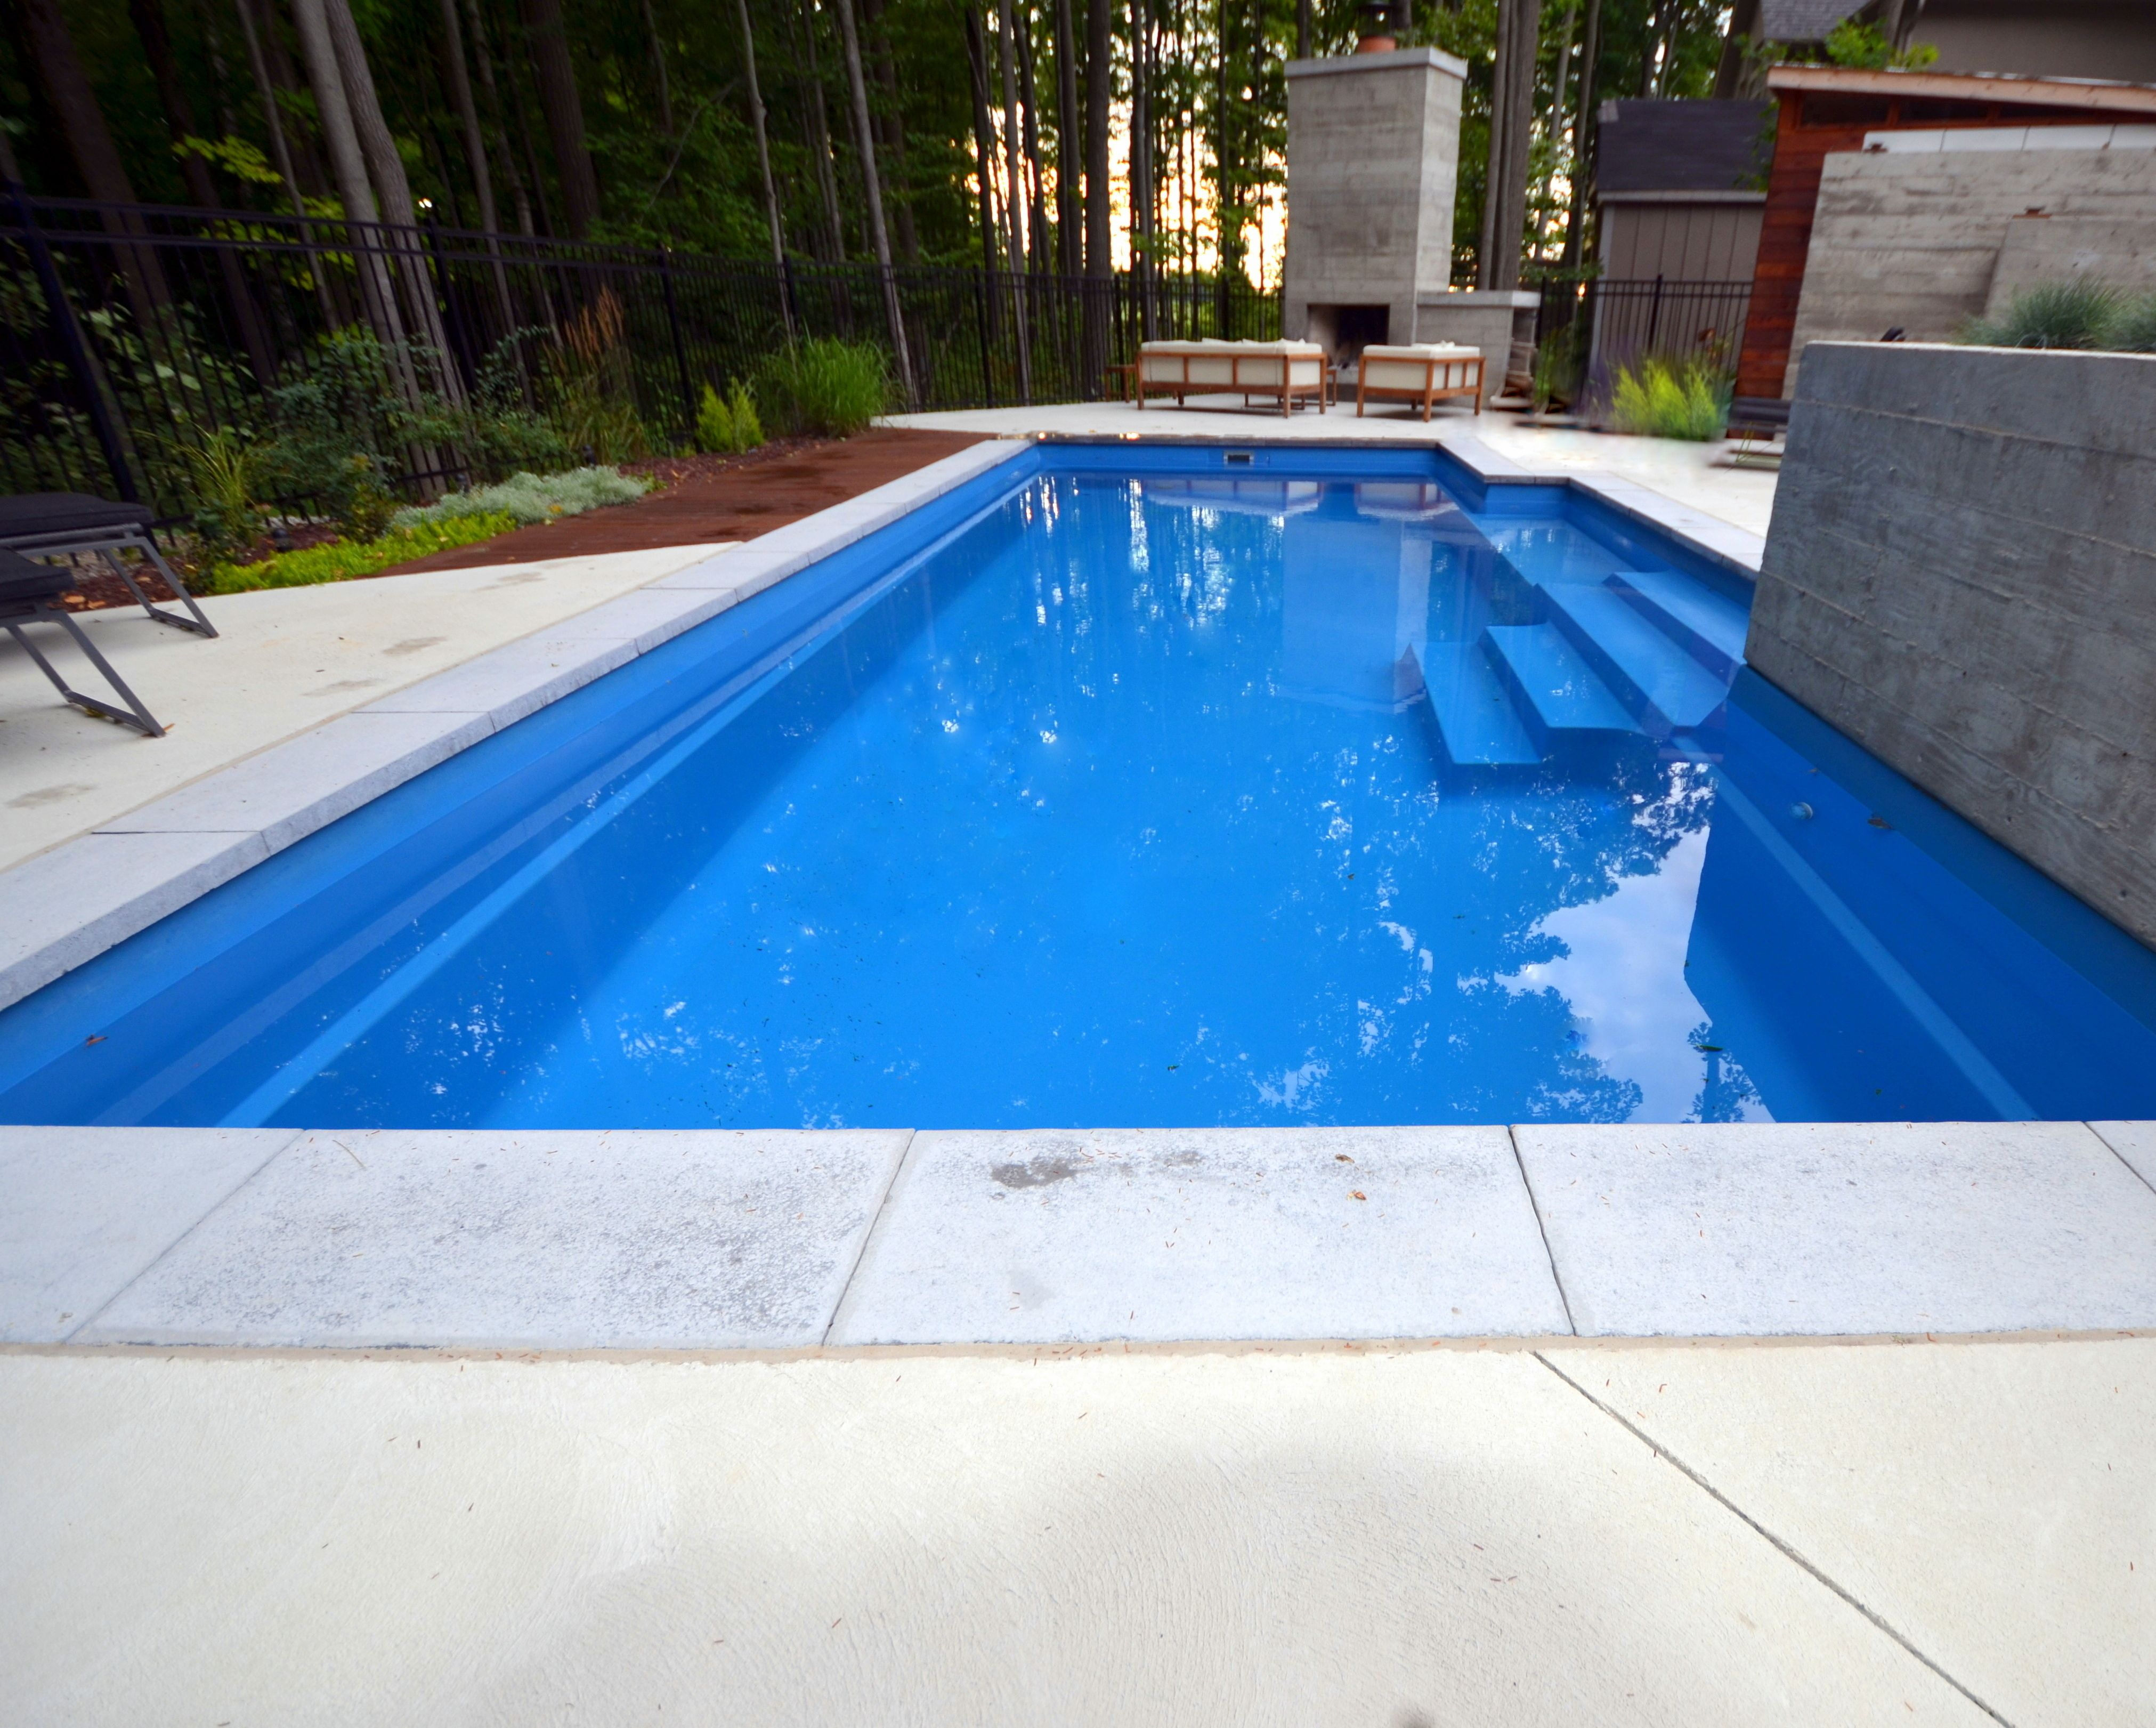 Natural Stone Coping On A Fiberglass Pool With Concrete